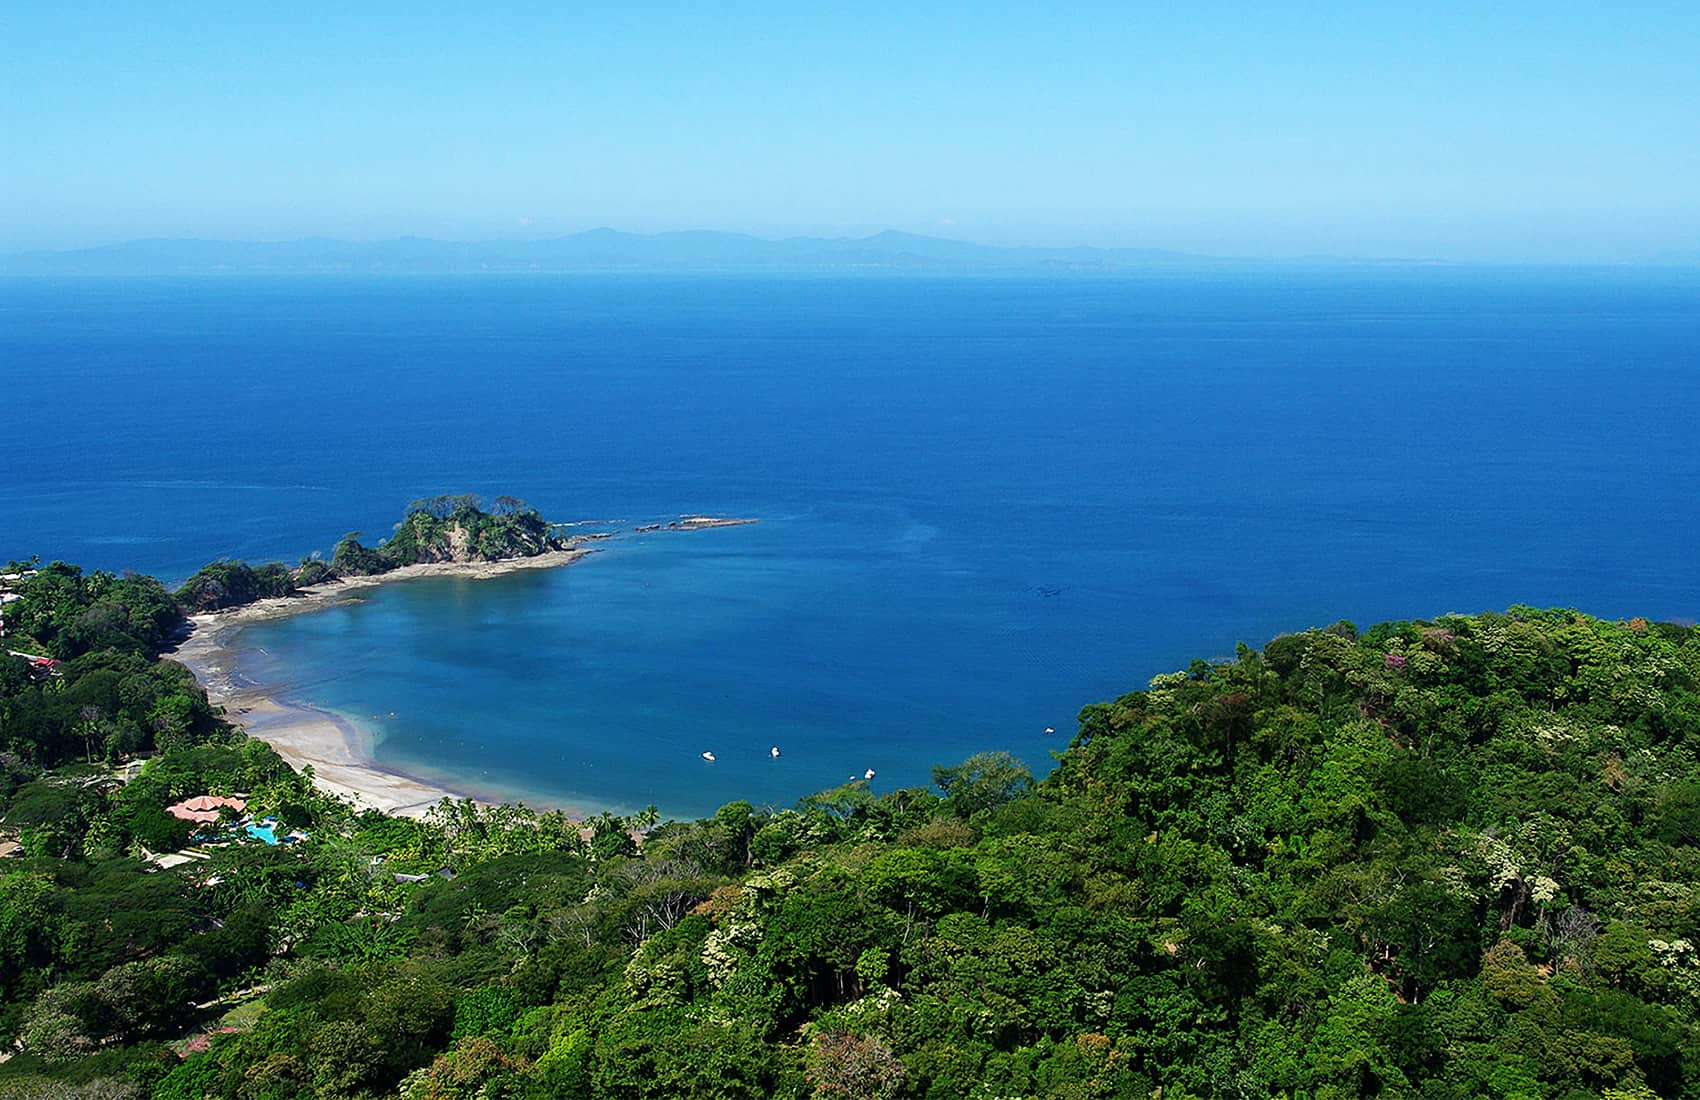 Costa Rica S Cleanest Beaches Of 2016 Get Blue Flags